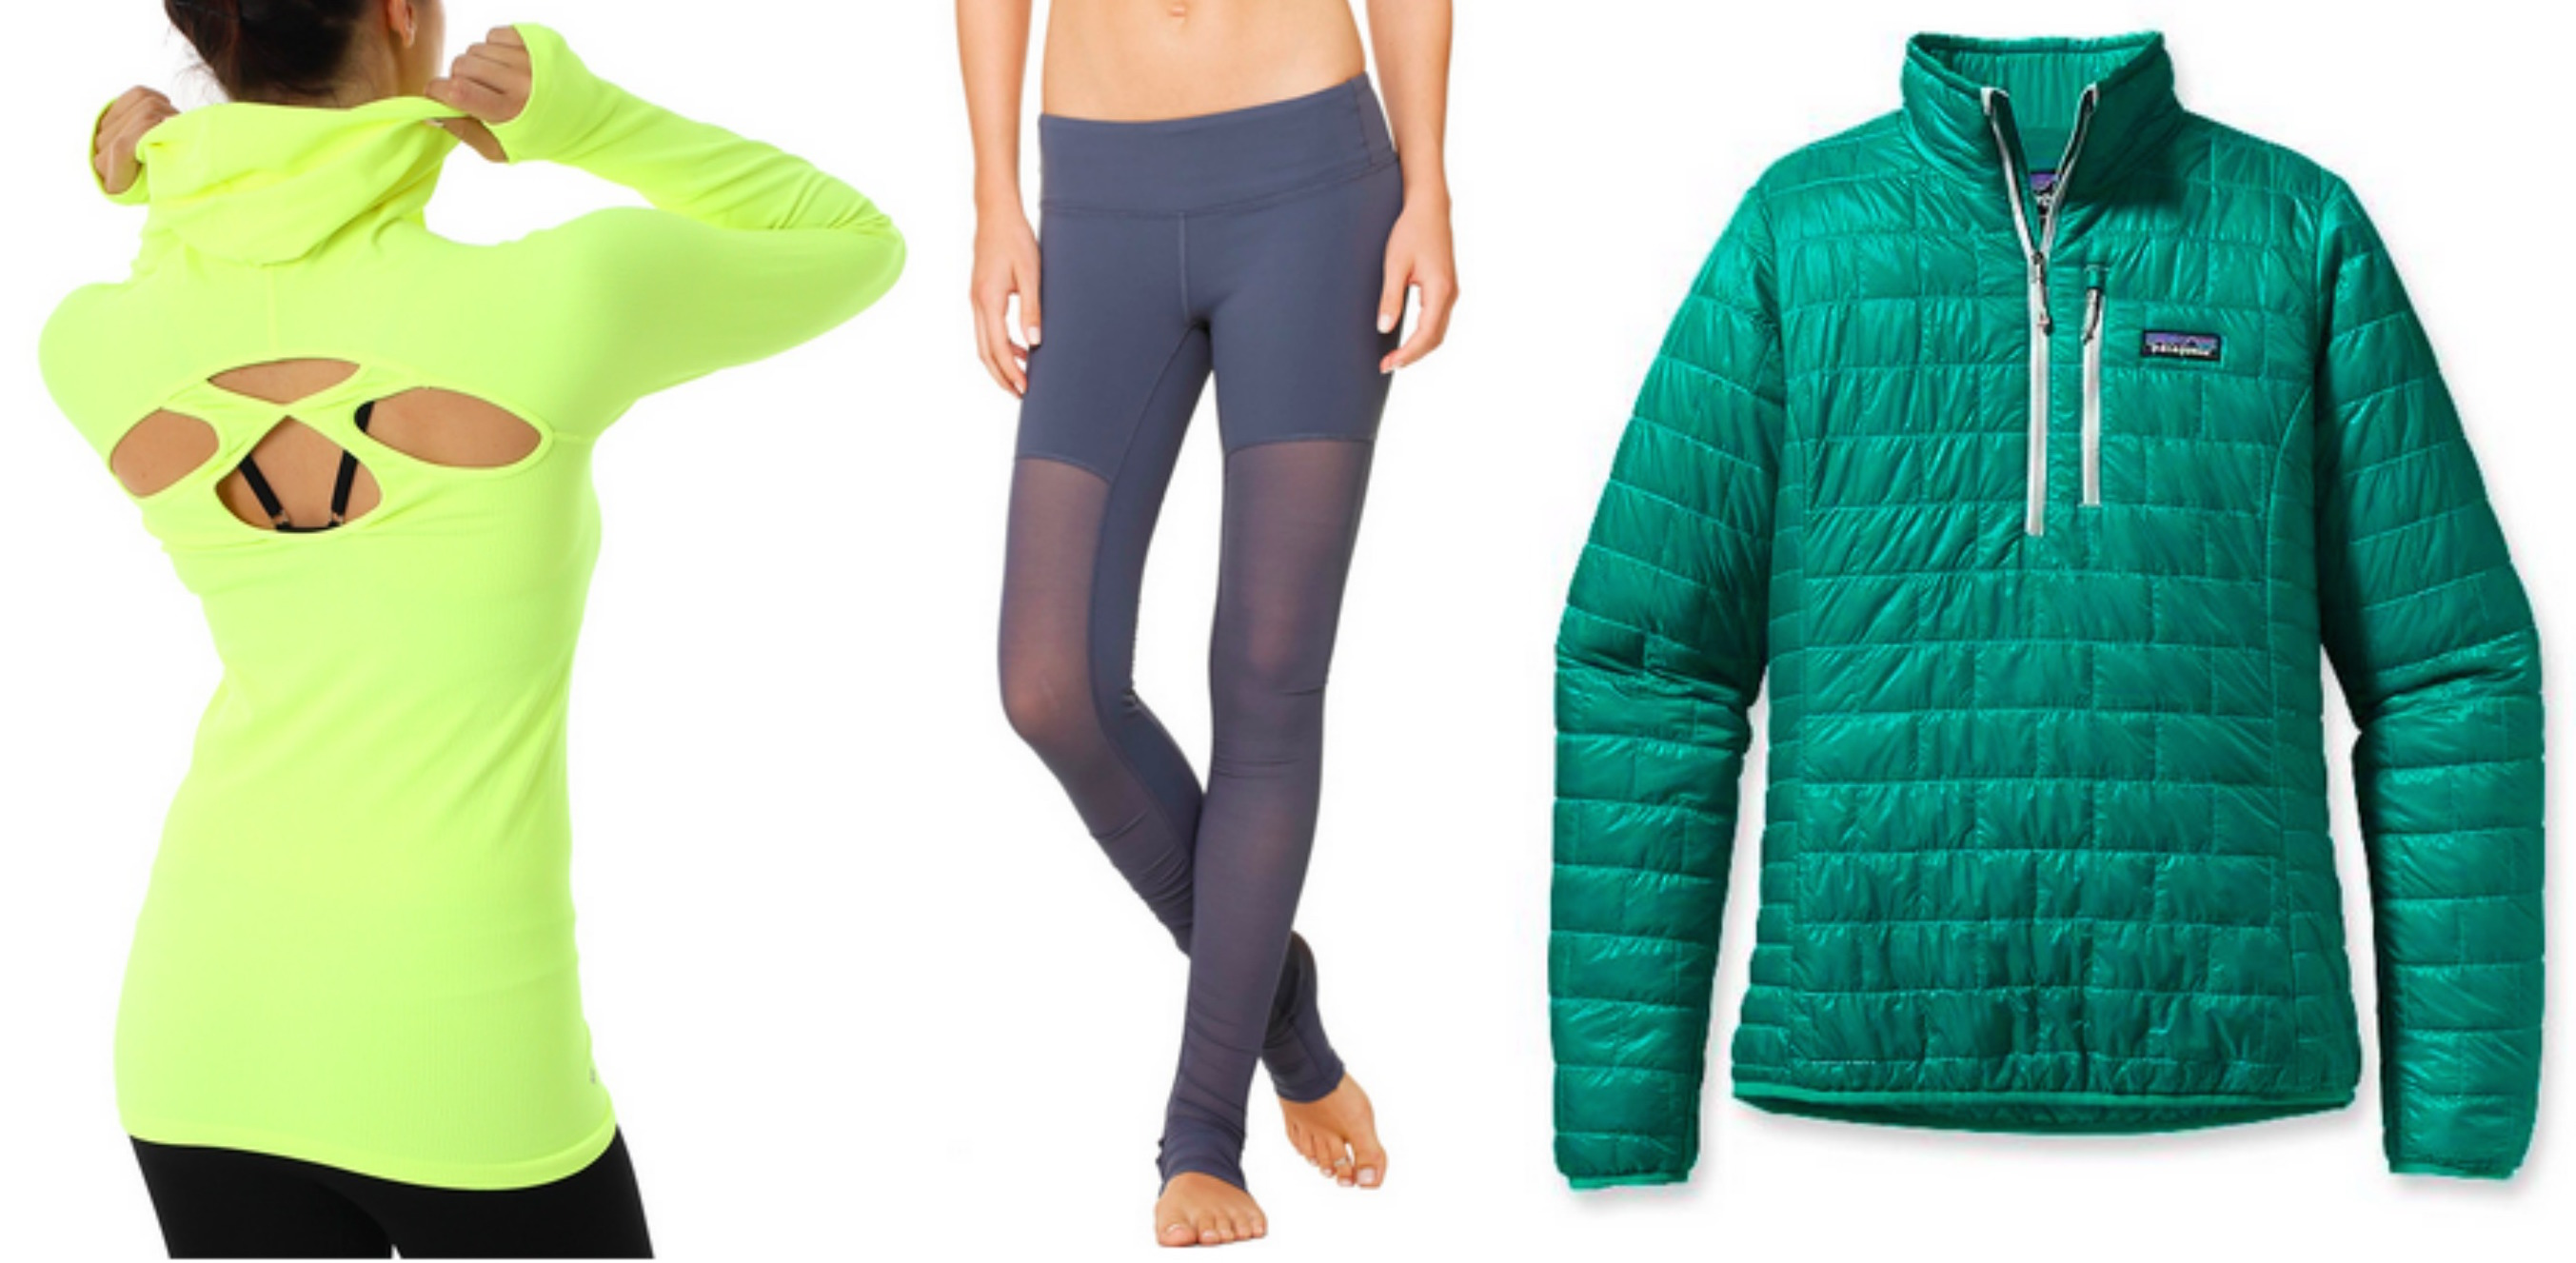 activewearusa cute fashion activewear